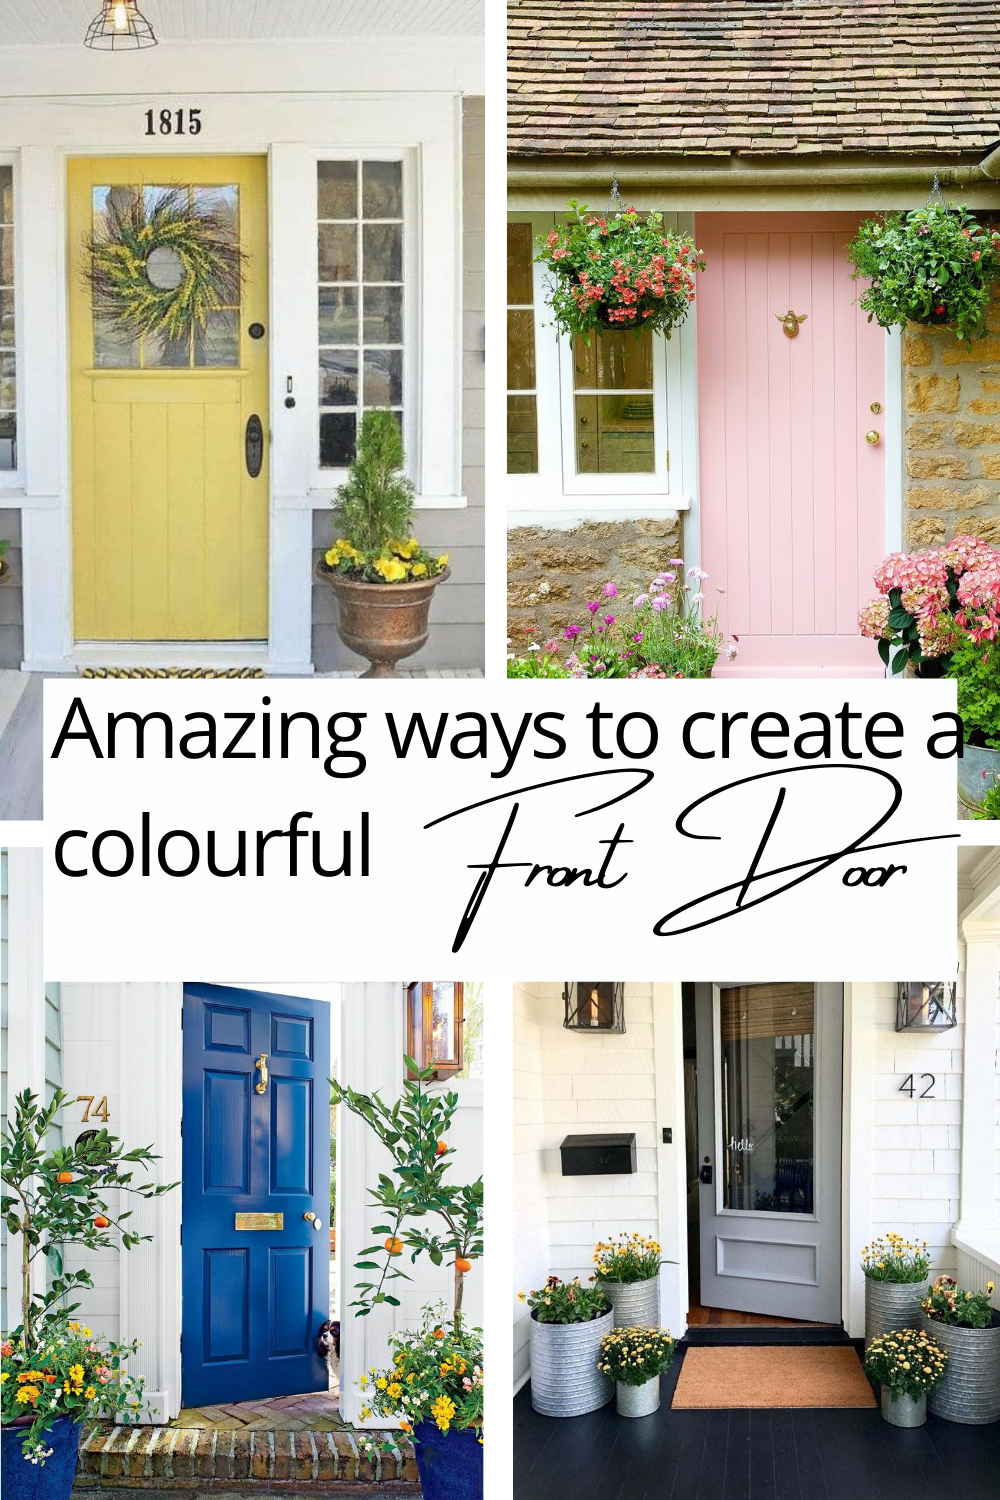 Looking for a way to freshen up your home? Why not start with adding some #frontdoordecor. From #royalblue to #prettypink you will be able to transform your home by painting your front door in a way that makes a #statement. #front door decor #front porches ideas #decorative door ideas #pretty front doors #paint front door #front door entrance ideas